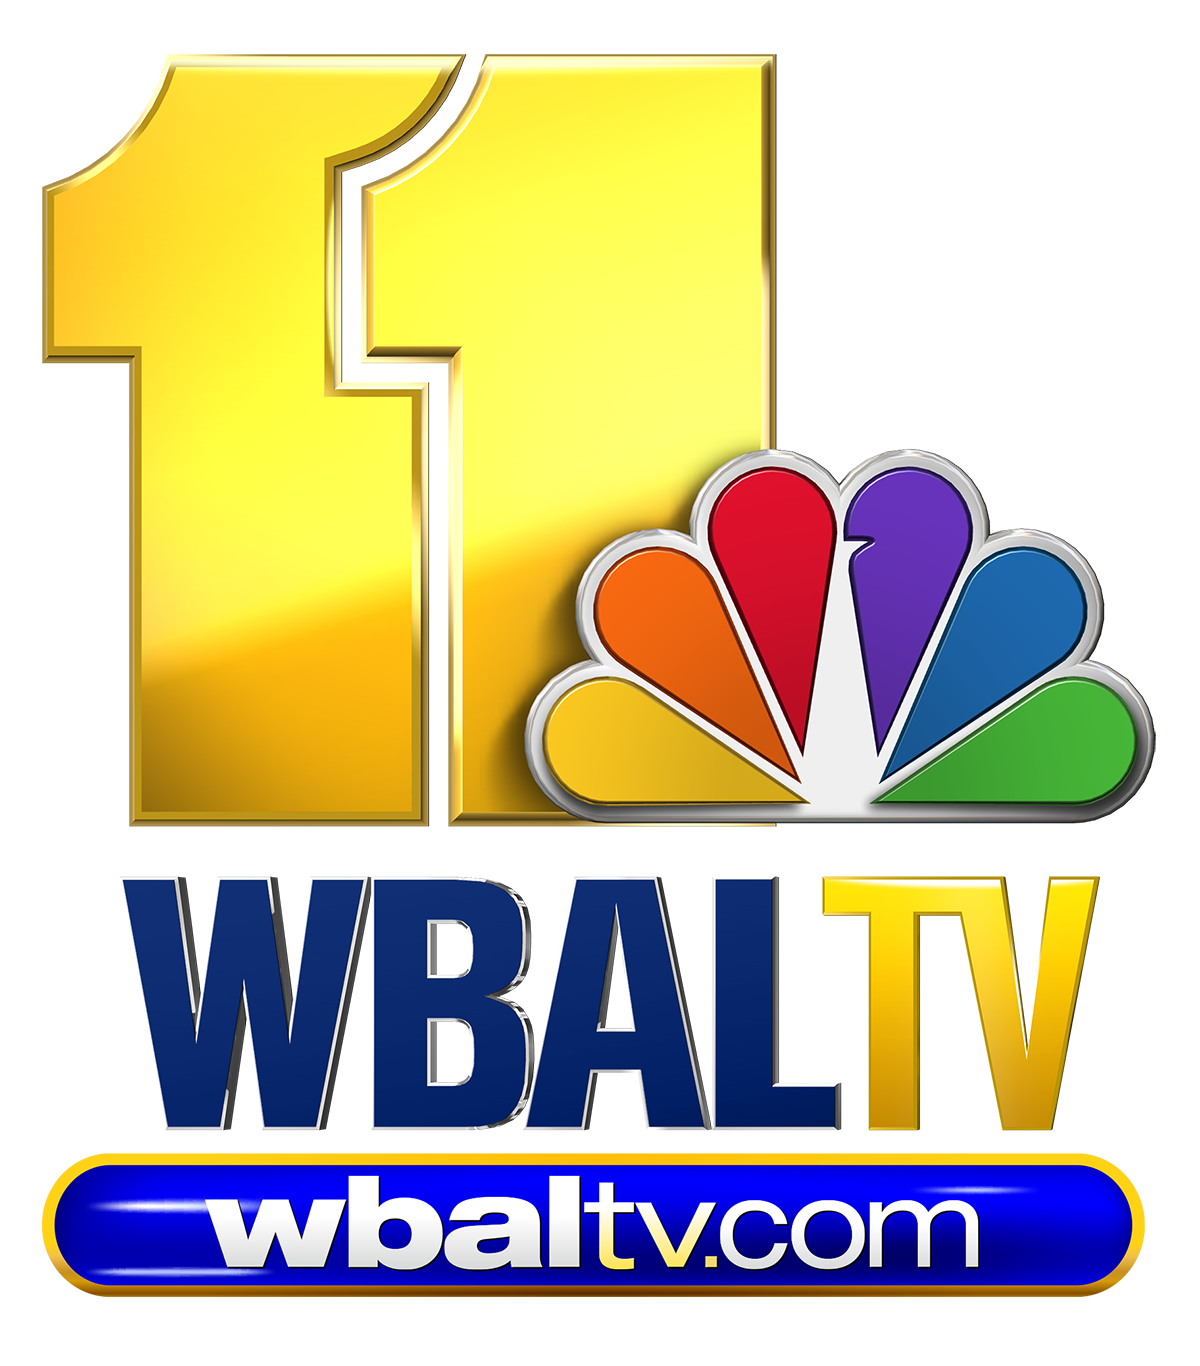 Wbal Tv Logo Vertical Blue 2017 For PR Newswire